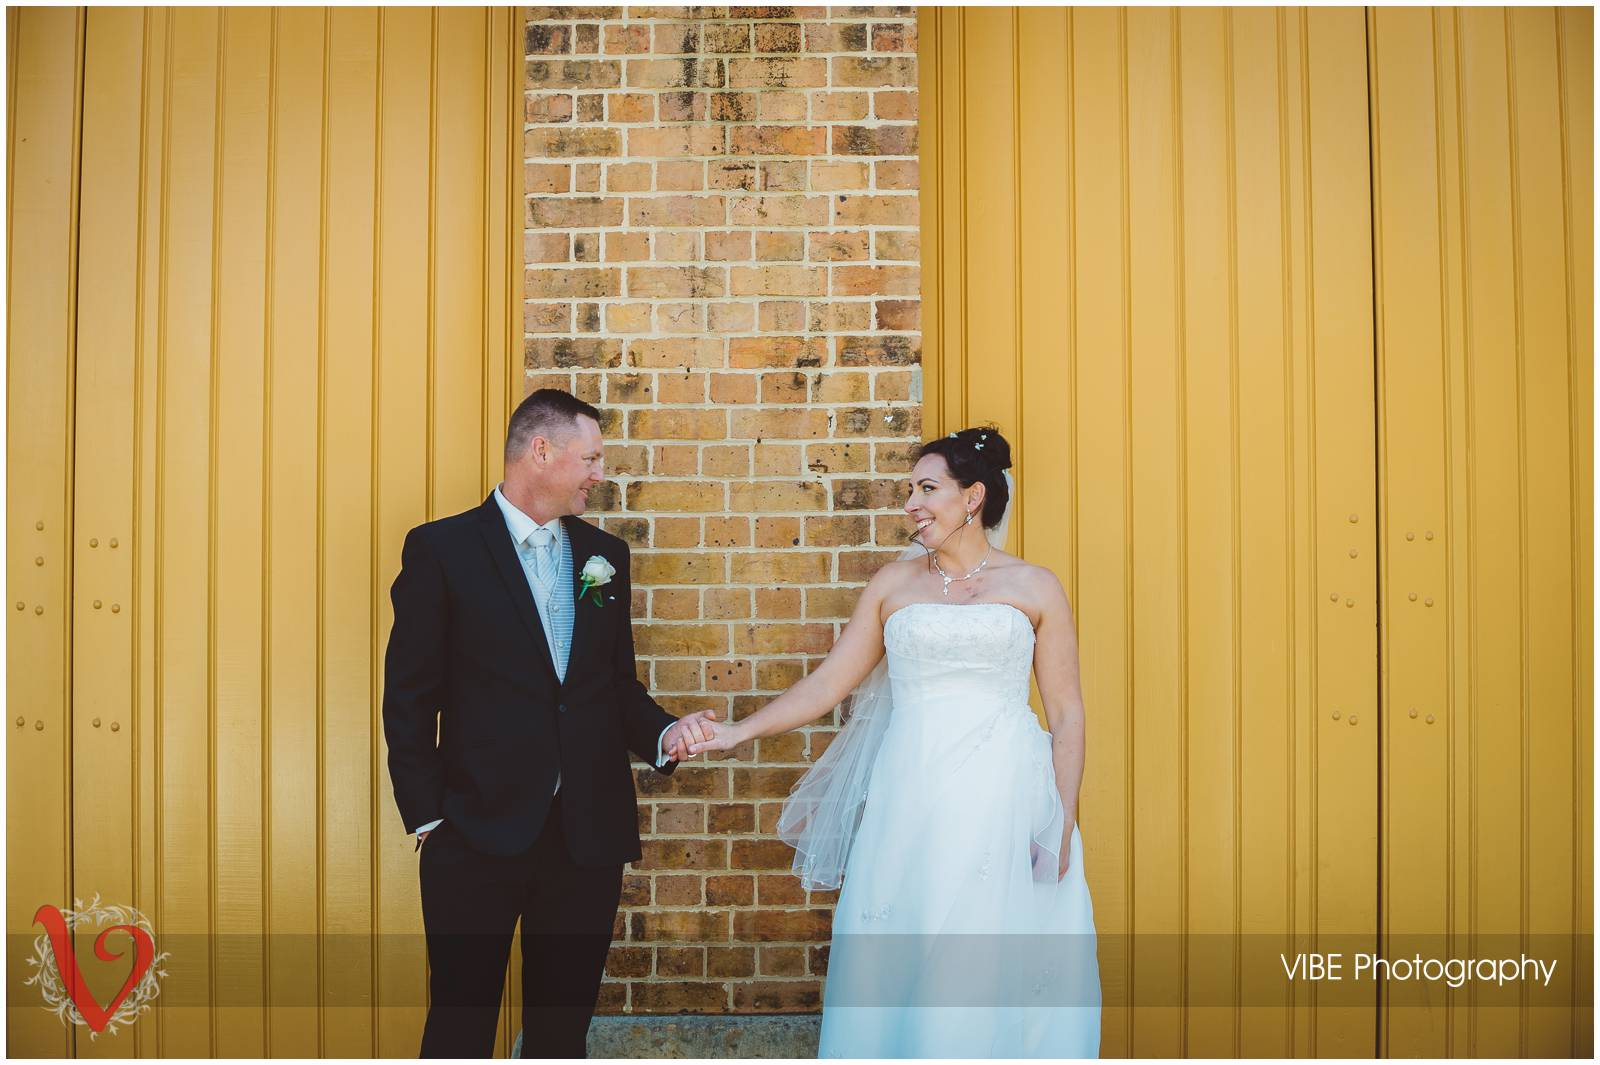 Newcastle wedding VIBE Photography (14)